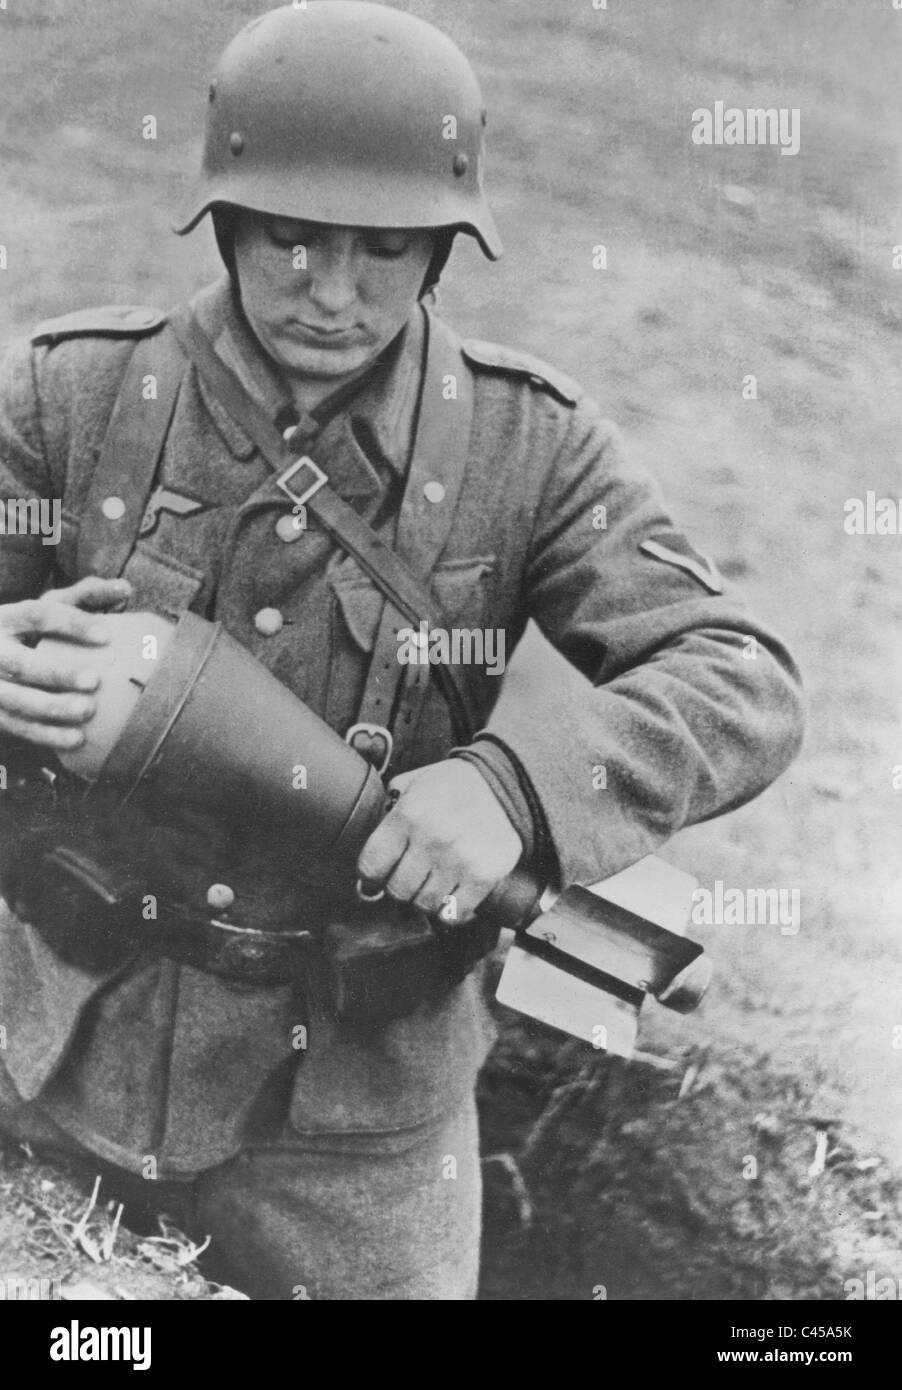 German soldier with a bazooka shell, 1944 - Stock Image